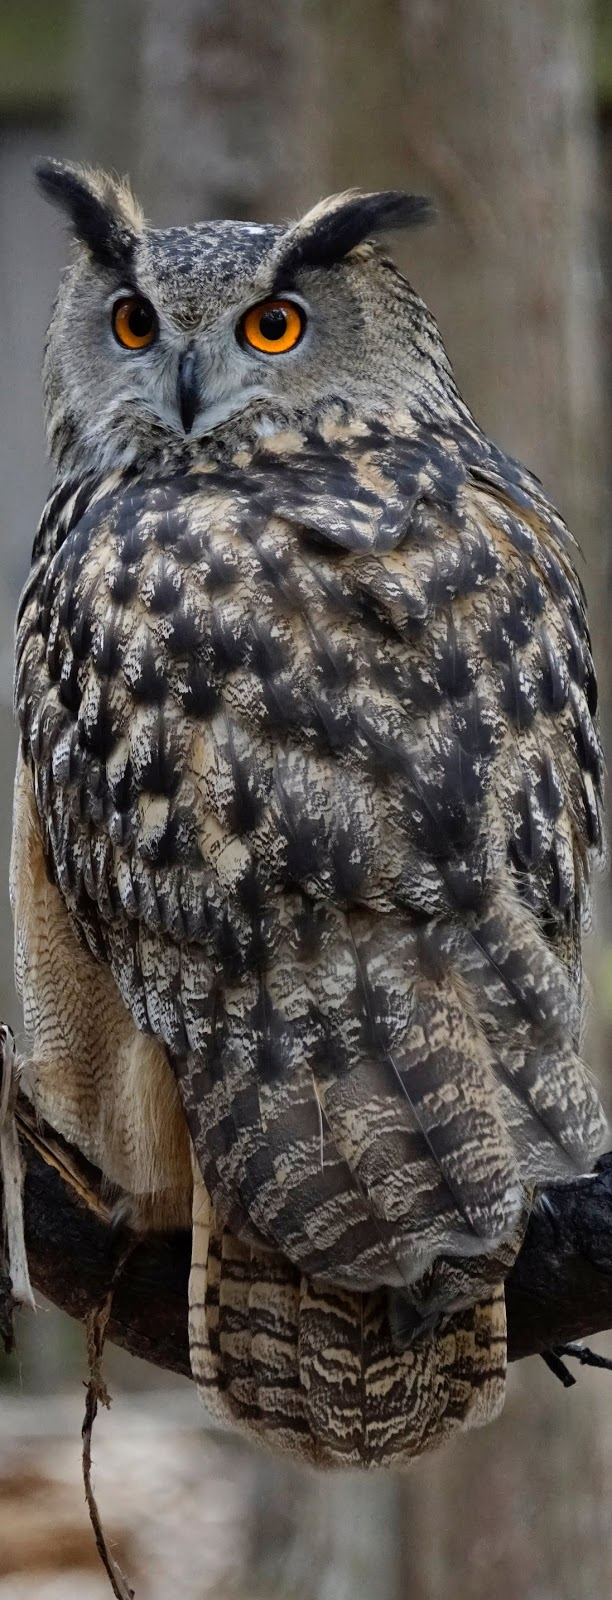 Picture of an owl.